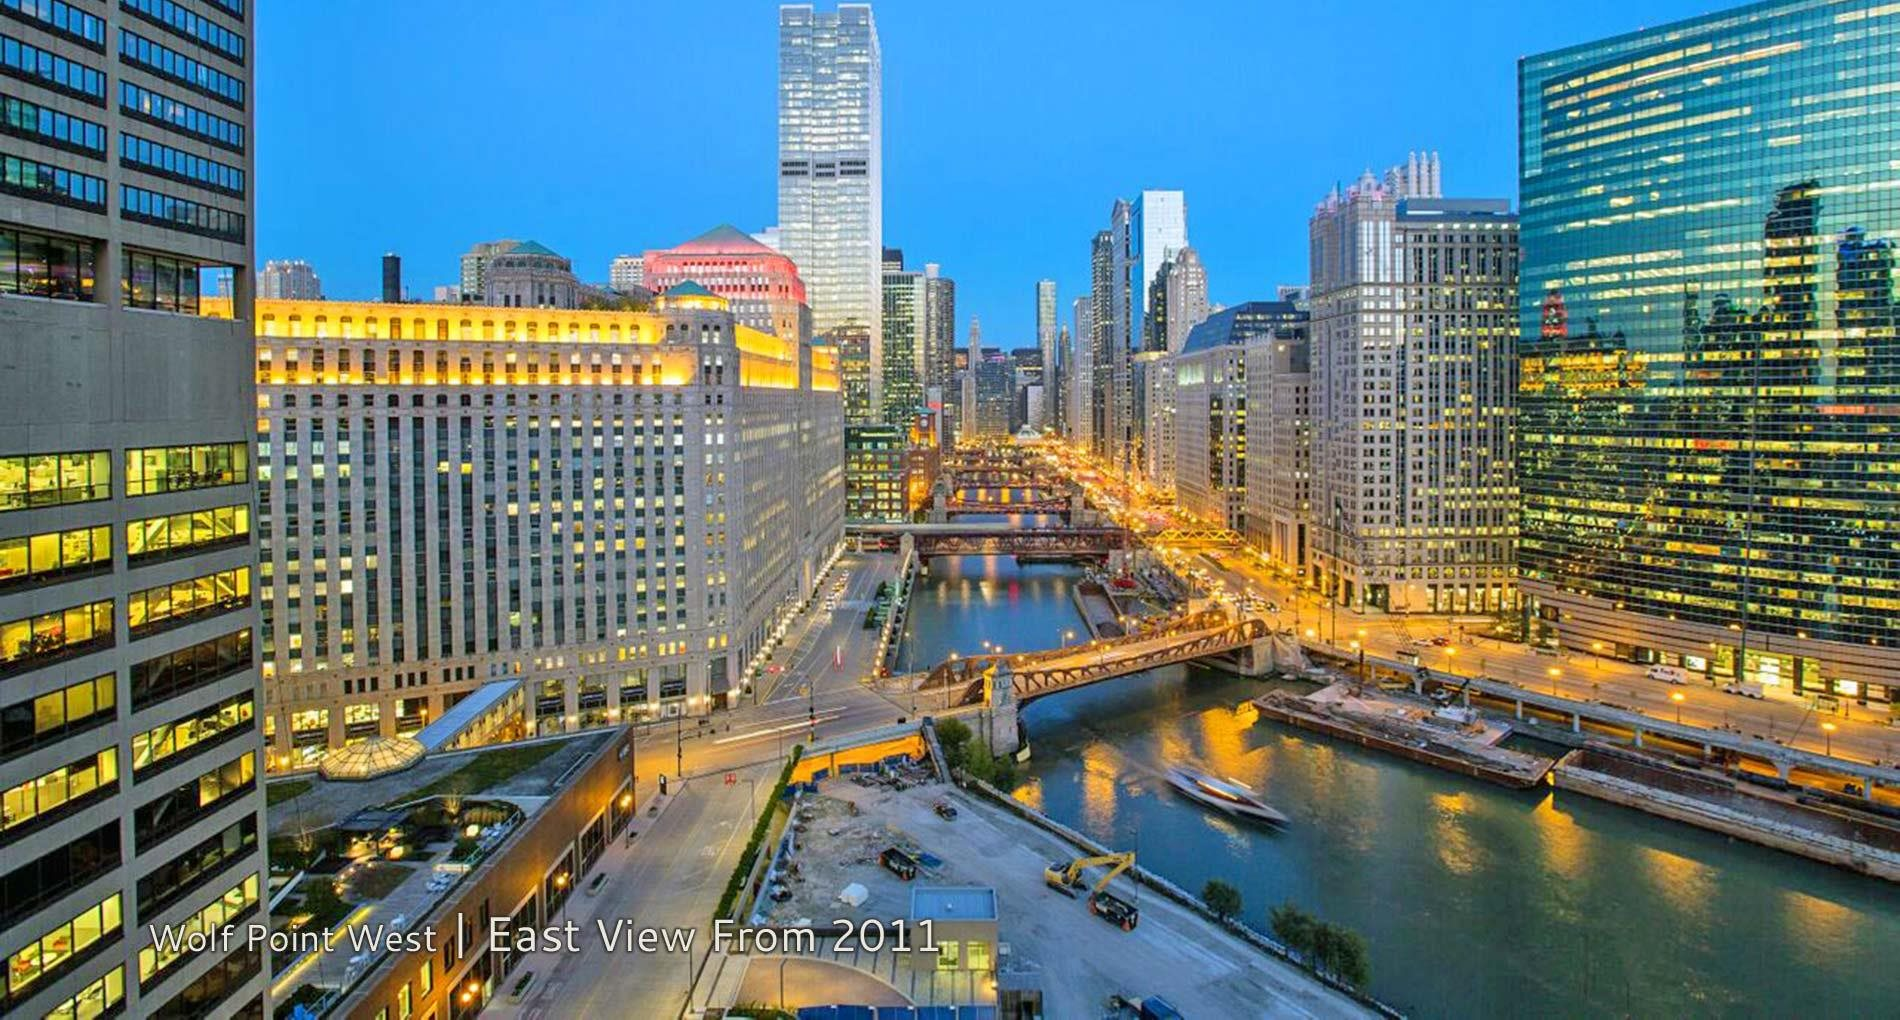 Wolf Point West | East View From 2011